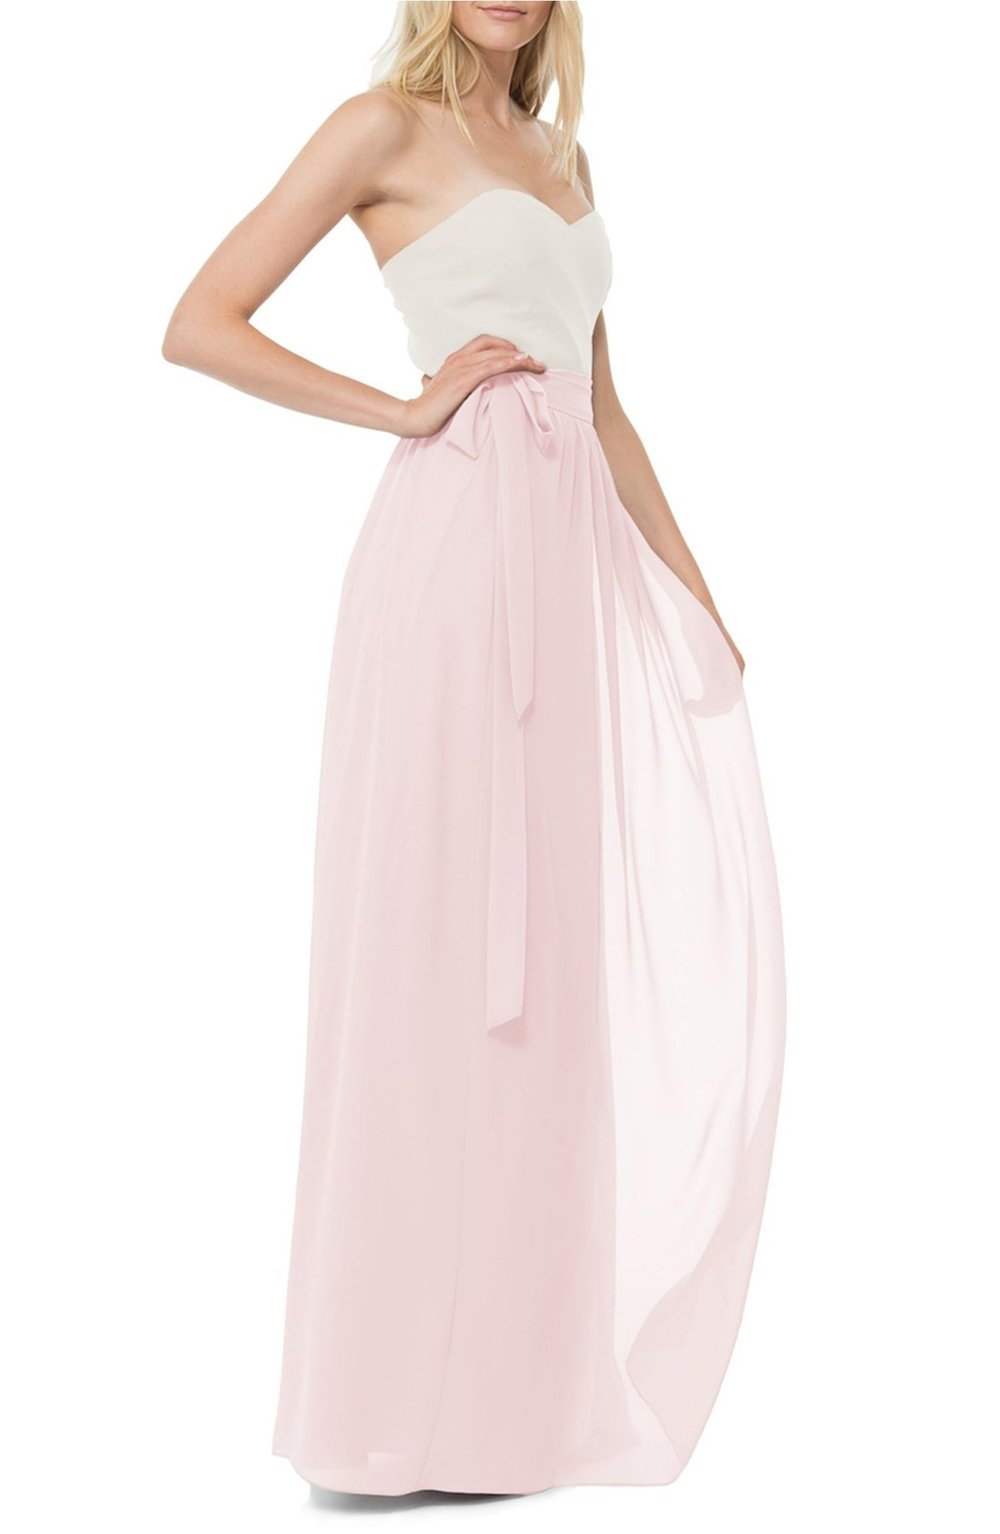 Designed for universal flattery, a sweeping chiffon skirt boats classic wrap styling with a defined waist by Joanna August.